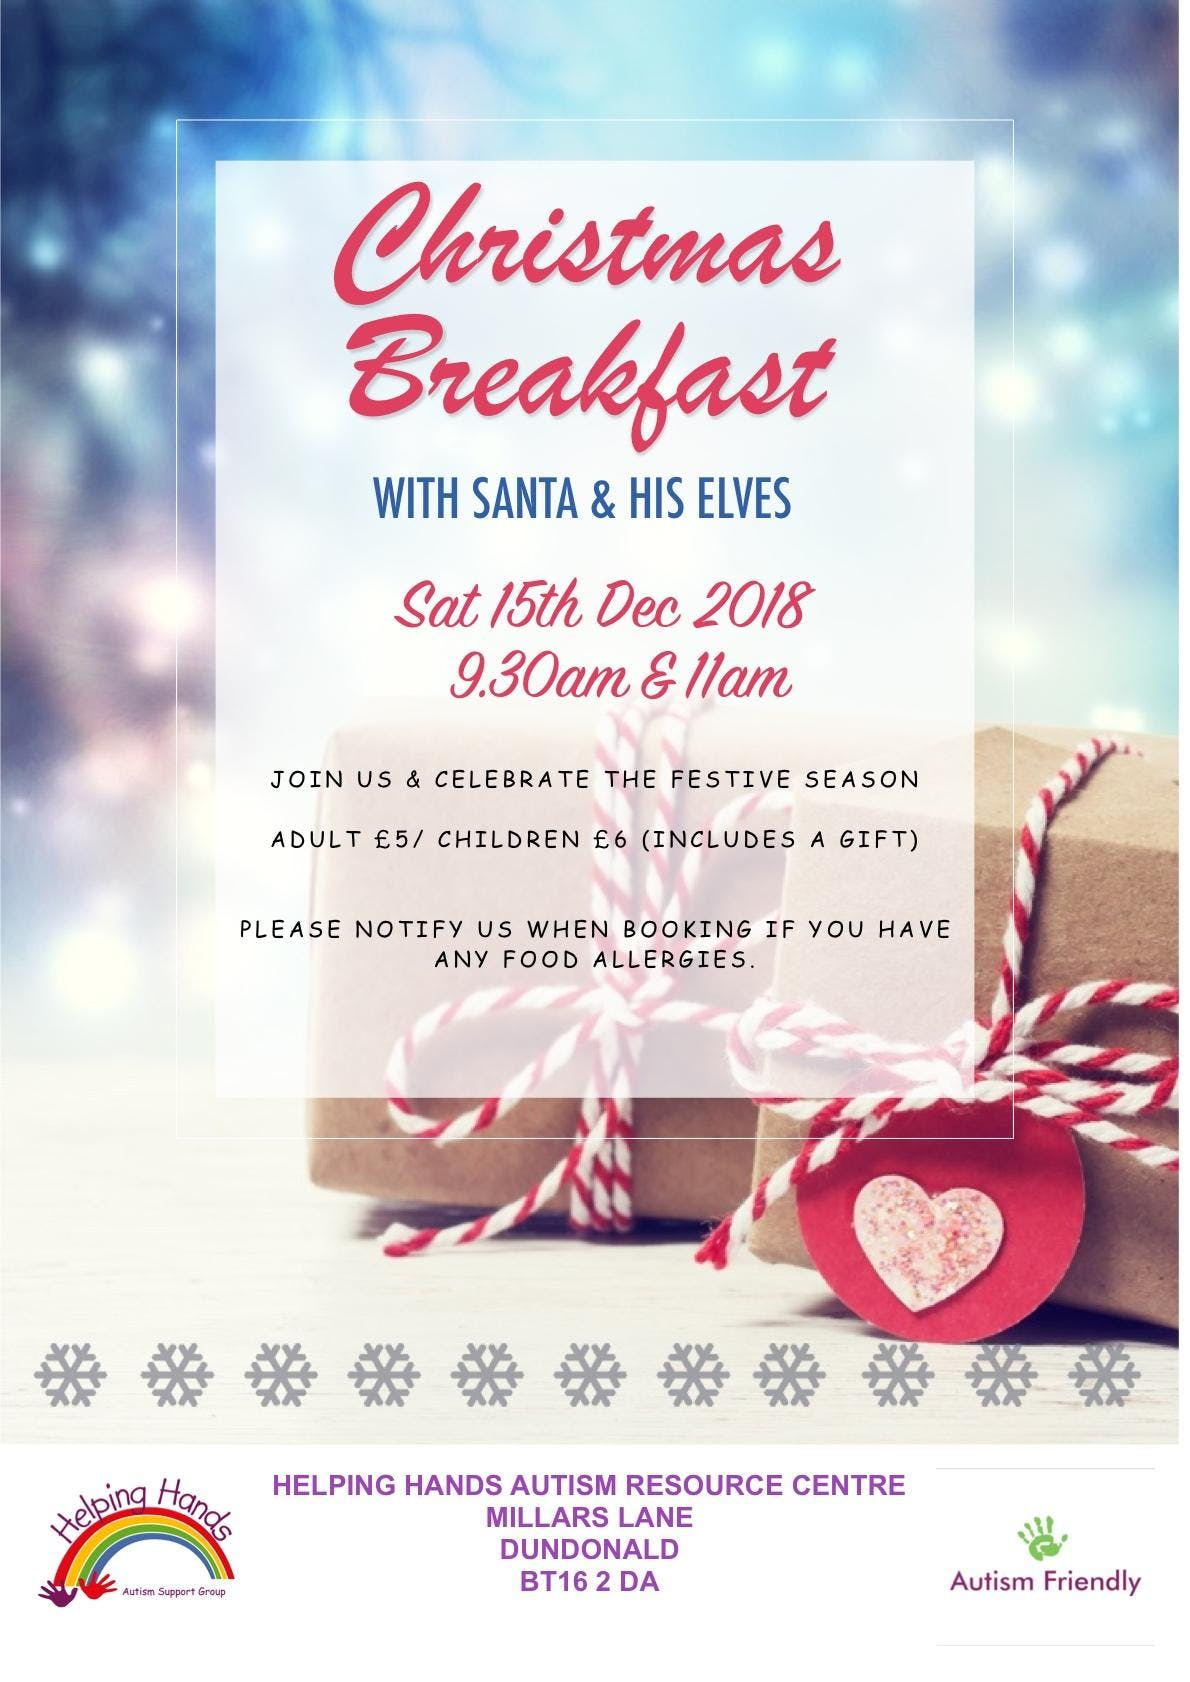 Christmas Brunch with Santa